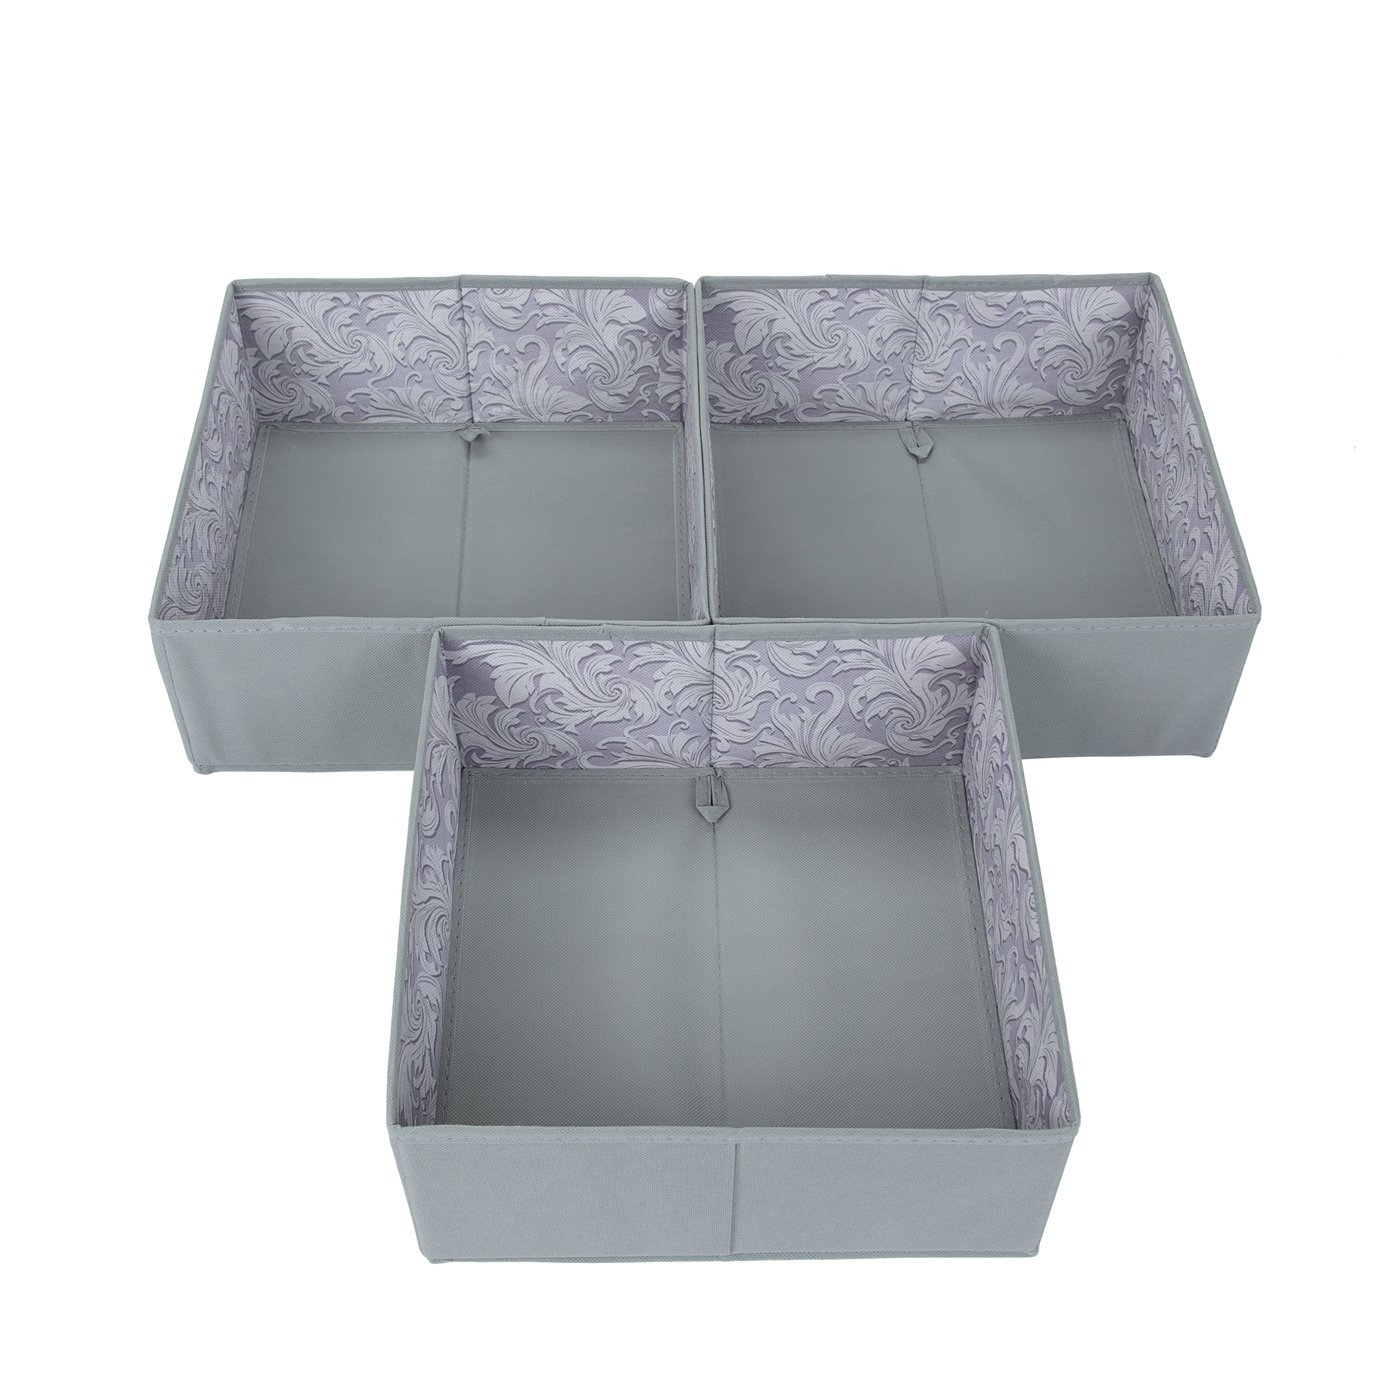 Amazon com sbs fabric dresser drawer closet organizer boxes cubes bins store socks ties underwear gloves bras tights bibs and diapers spanish gray